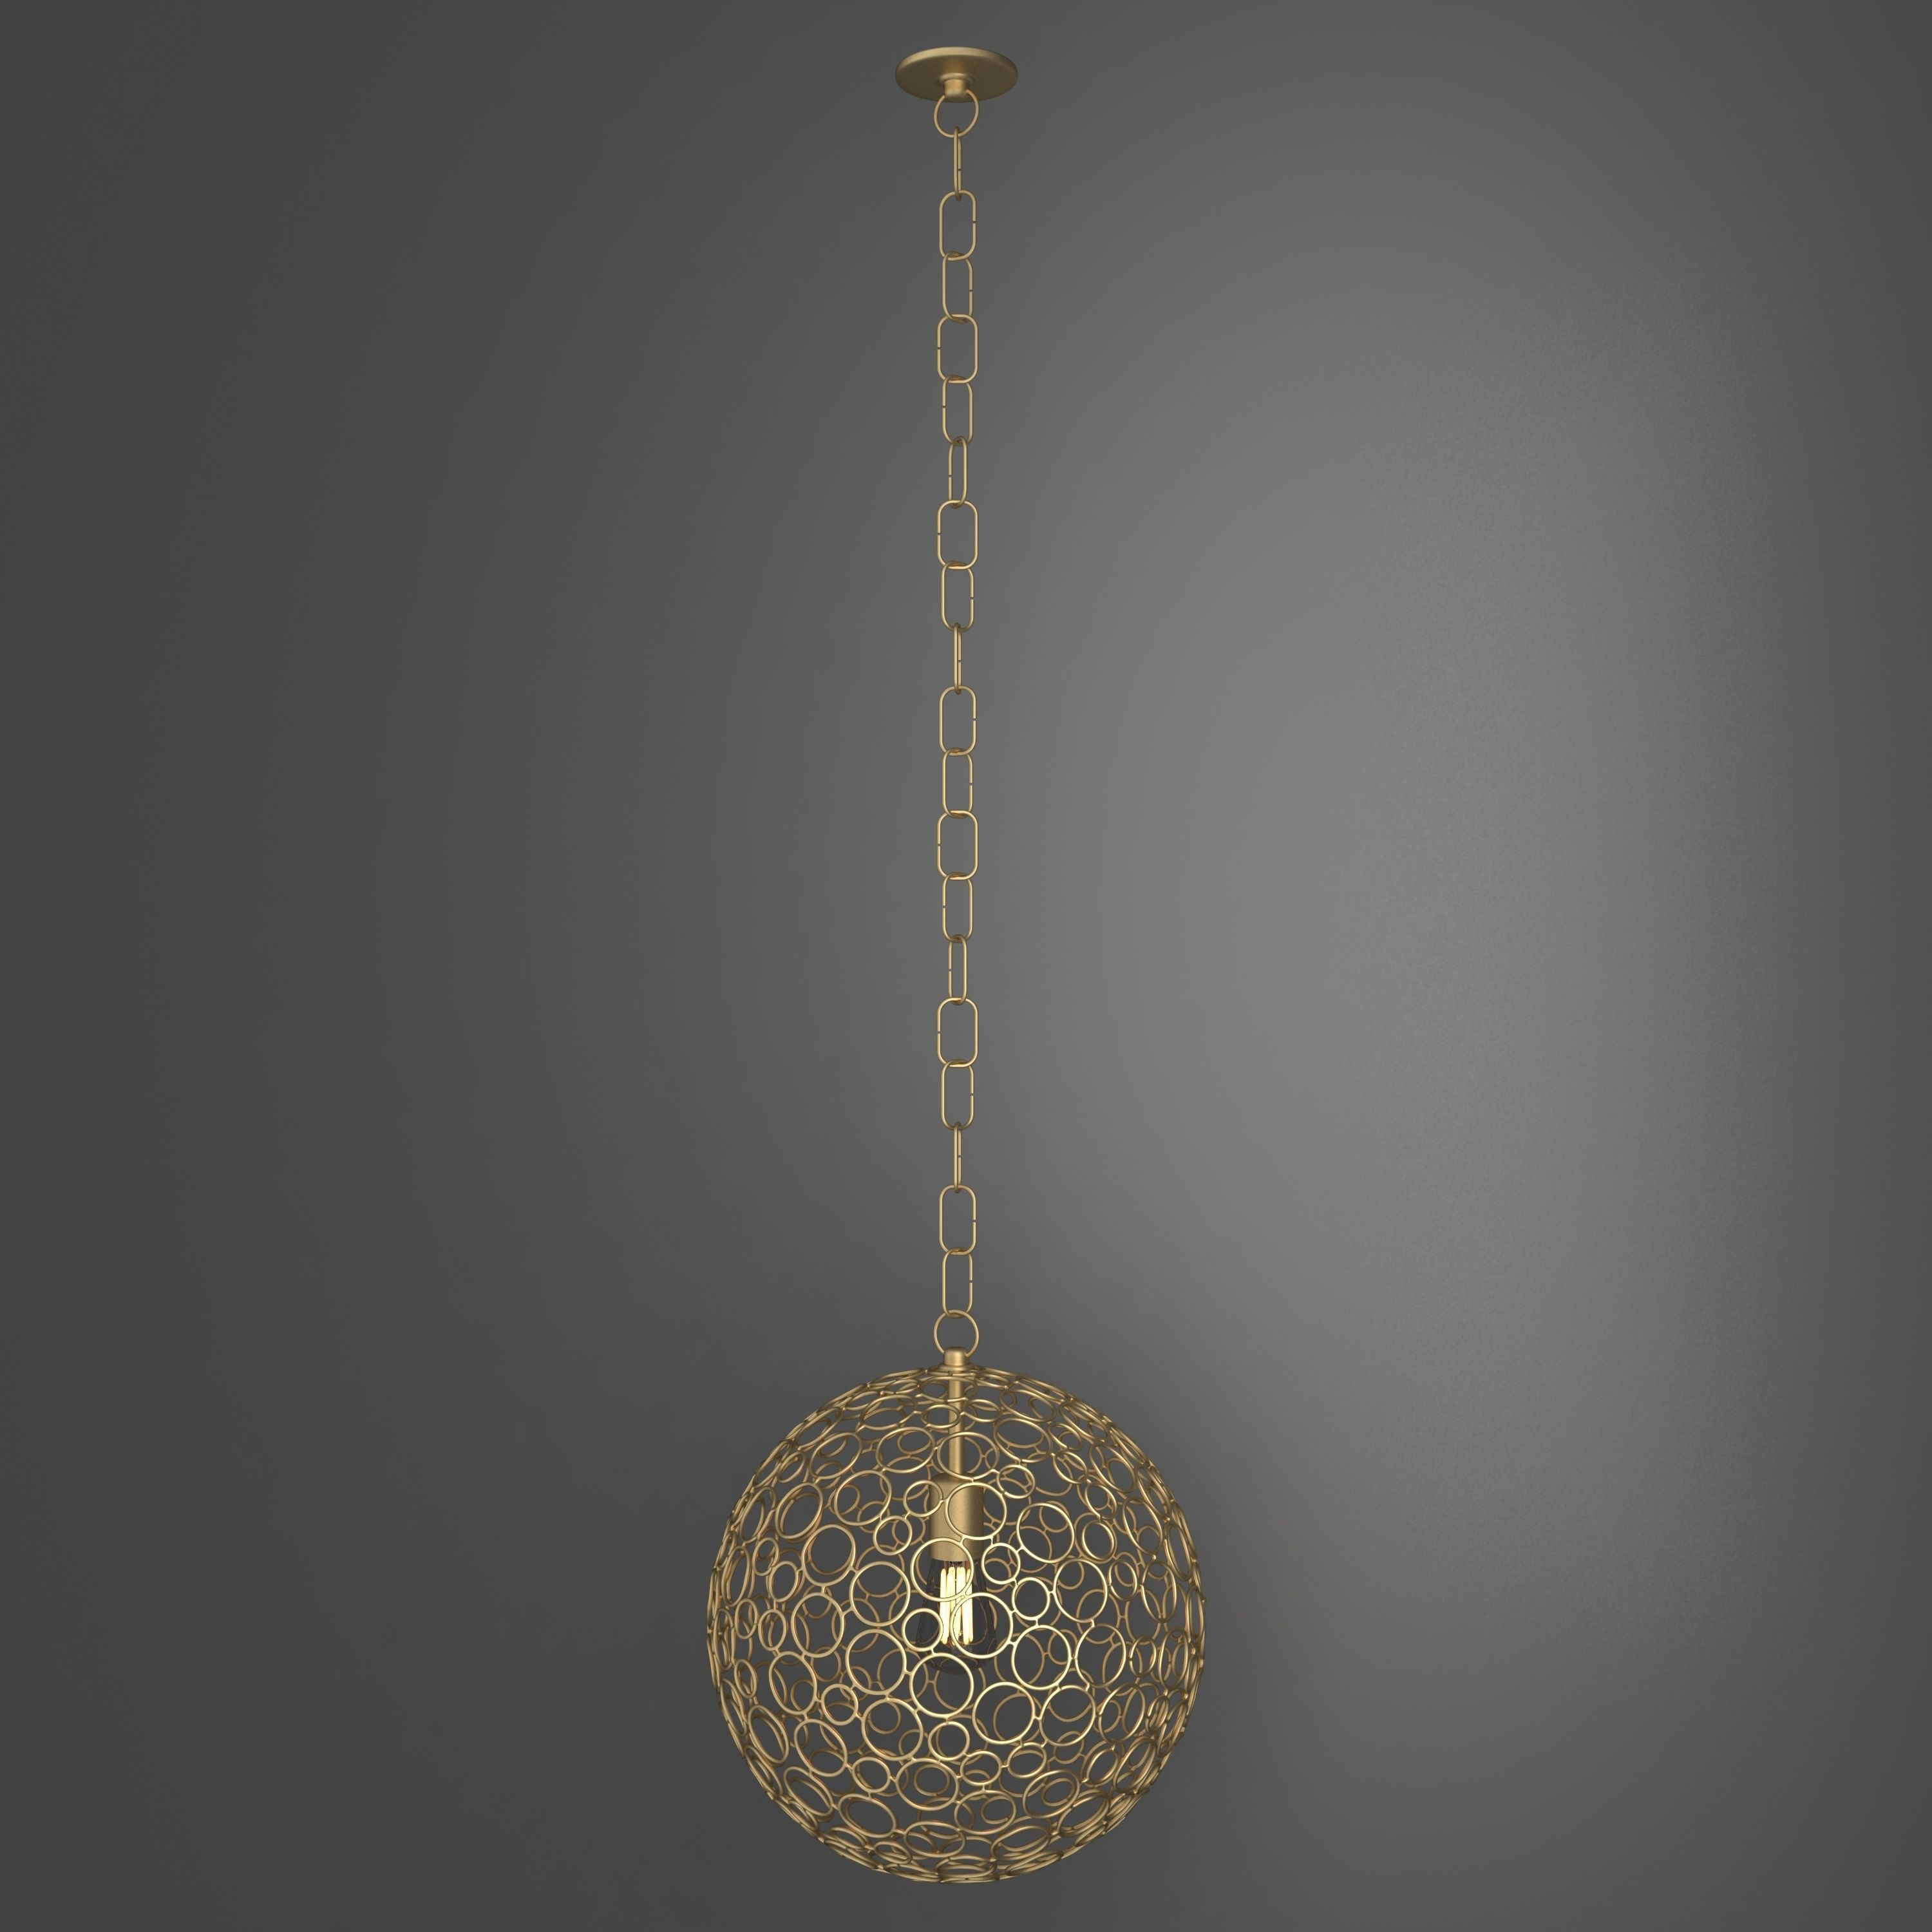 3d Shades Of Light Circle Sphere Pendant Small Cgtrader